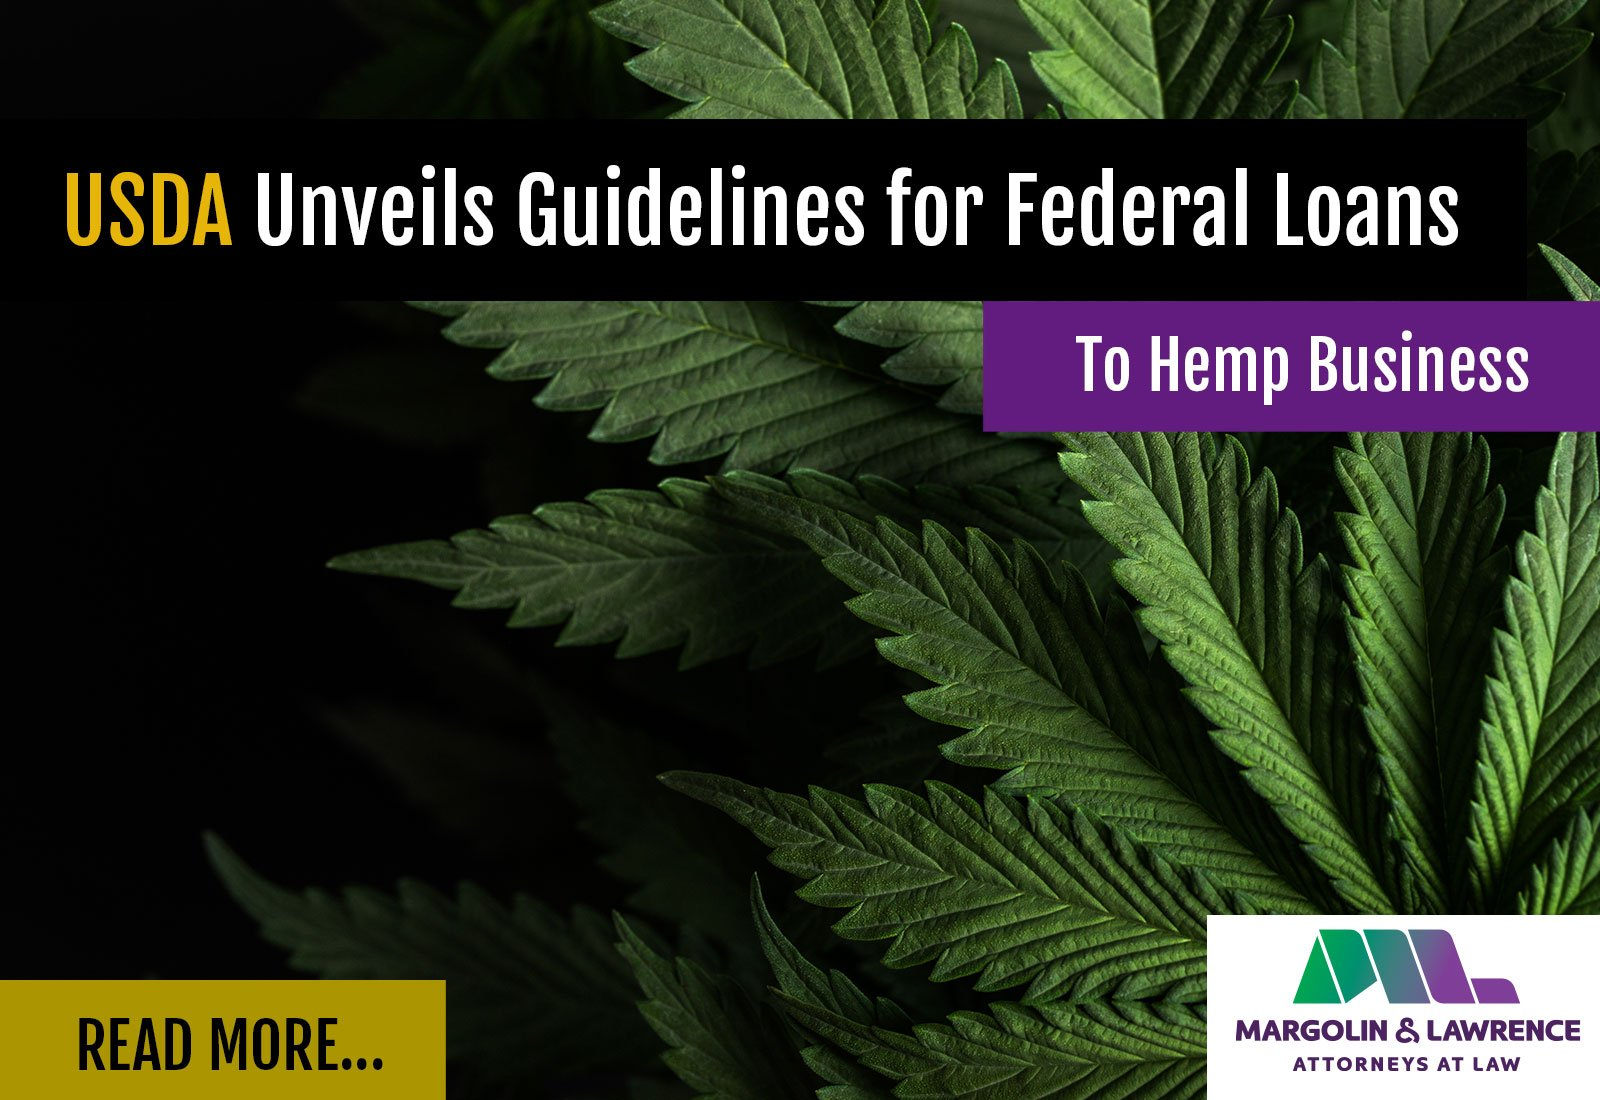 USDA Unveils Guidelines For Federal Loans To Hemp Business